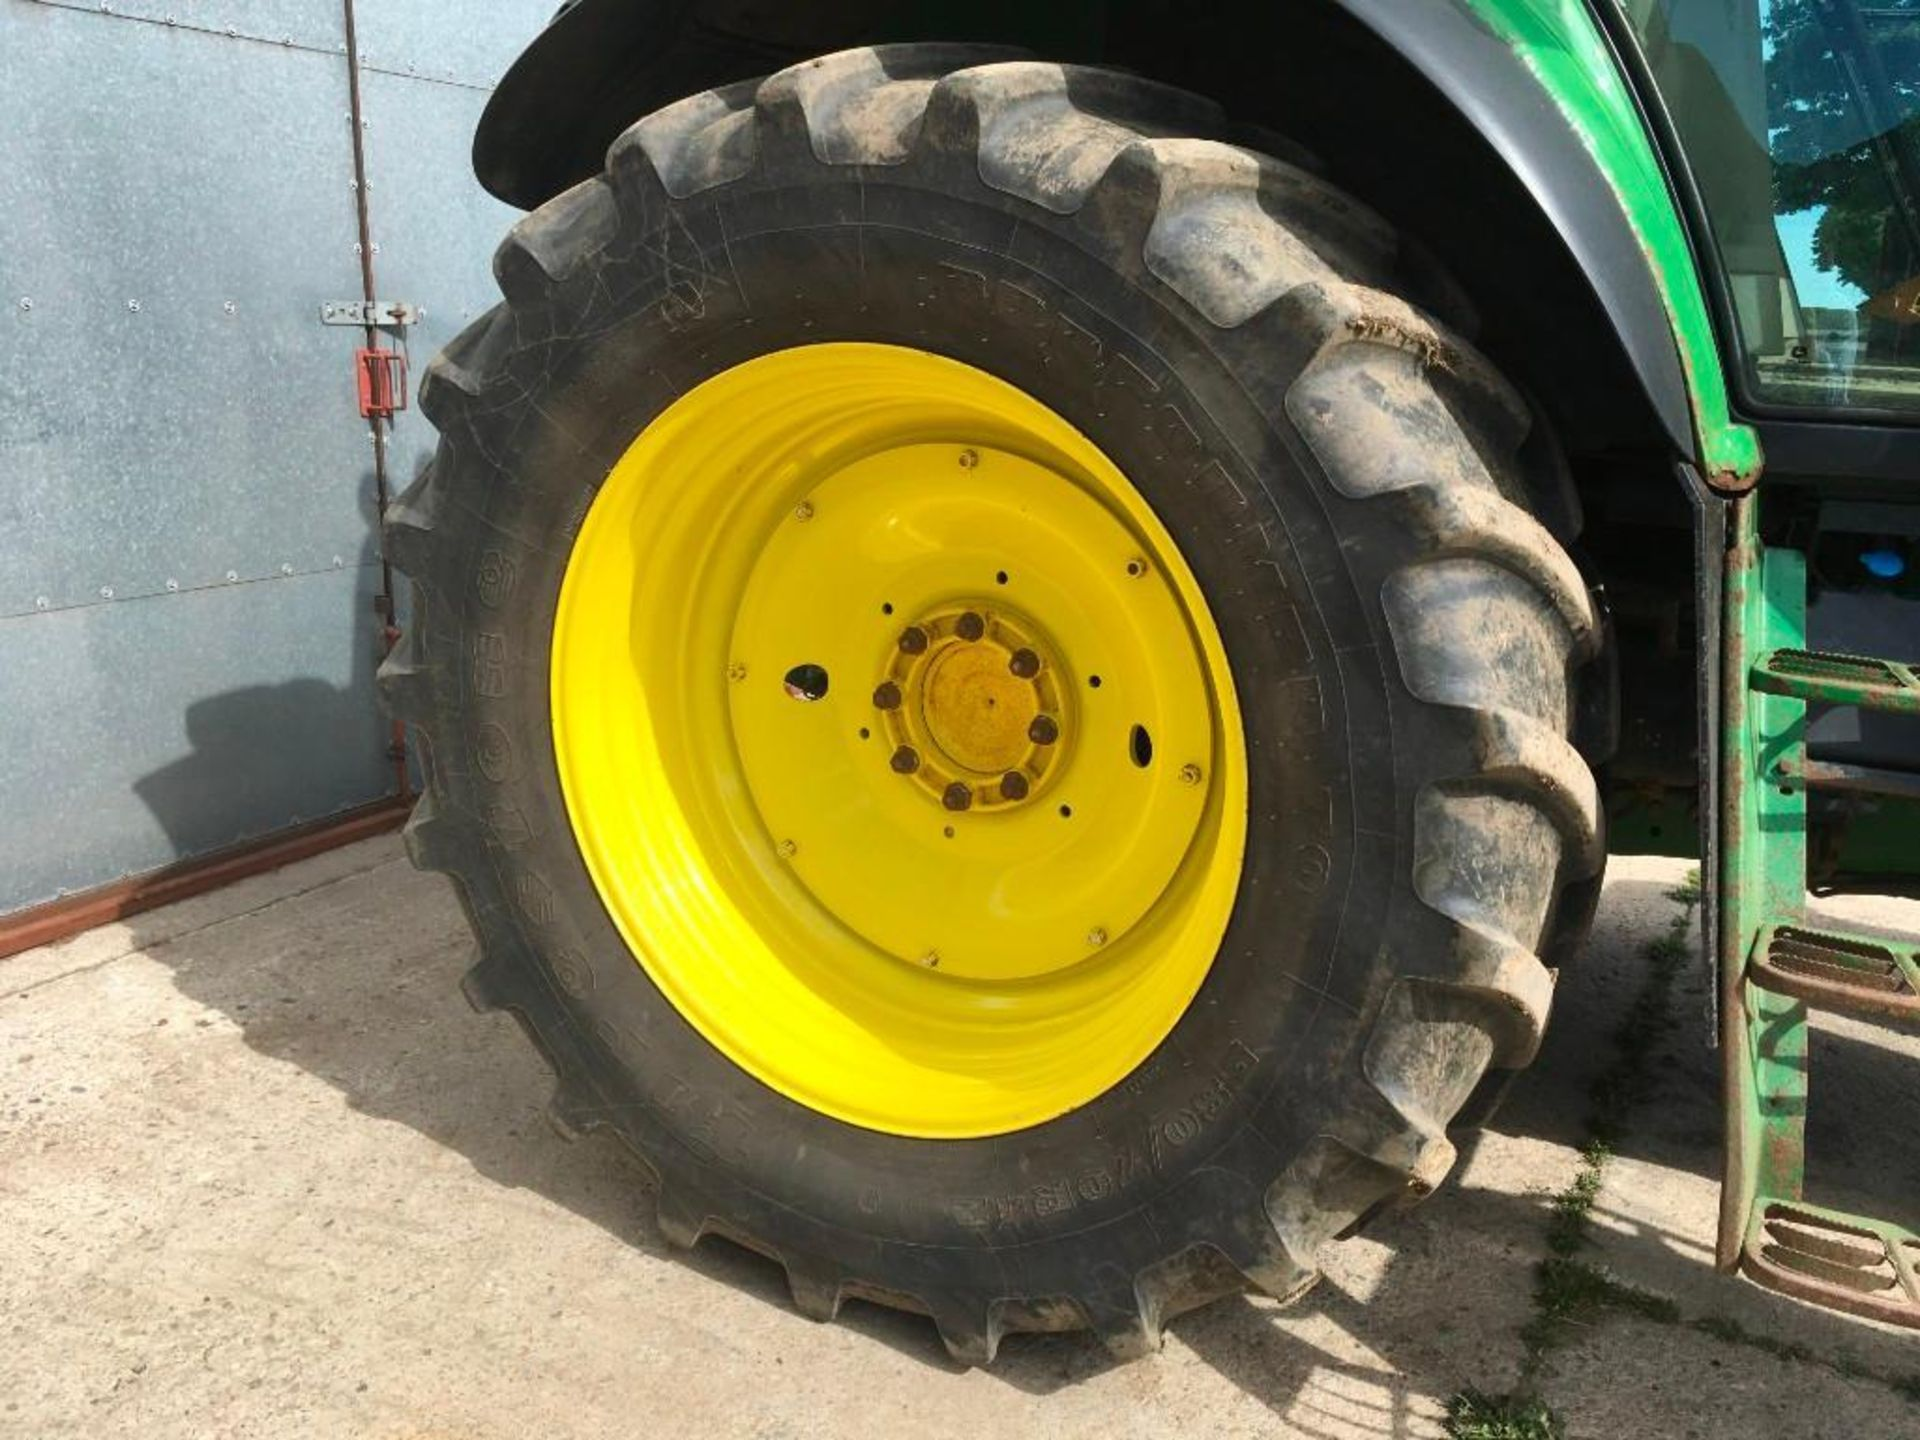 2008 John Deere 7530 tractor with auto quad gear box, 4 spool valves, pick up hitch, air seat, front - Image 8 of 14